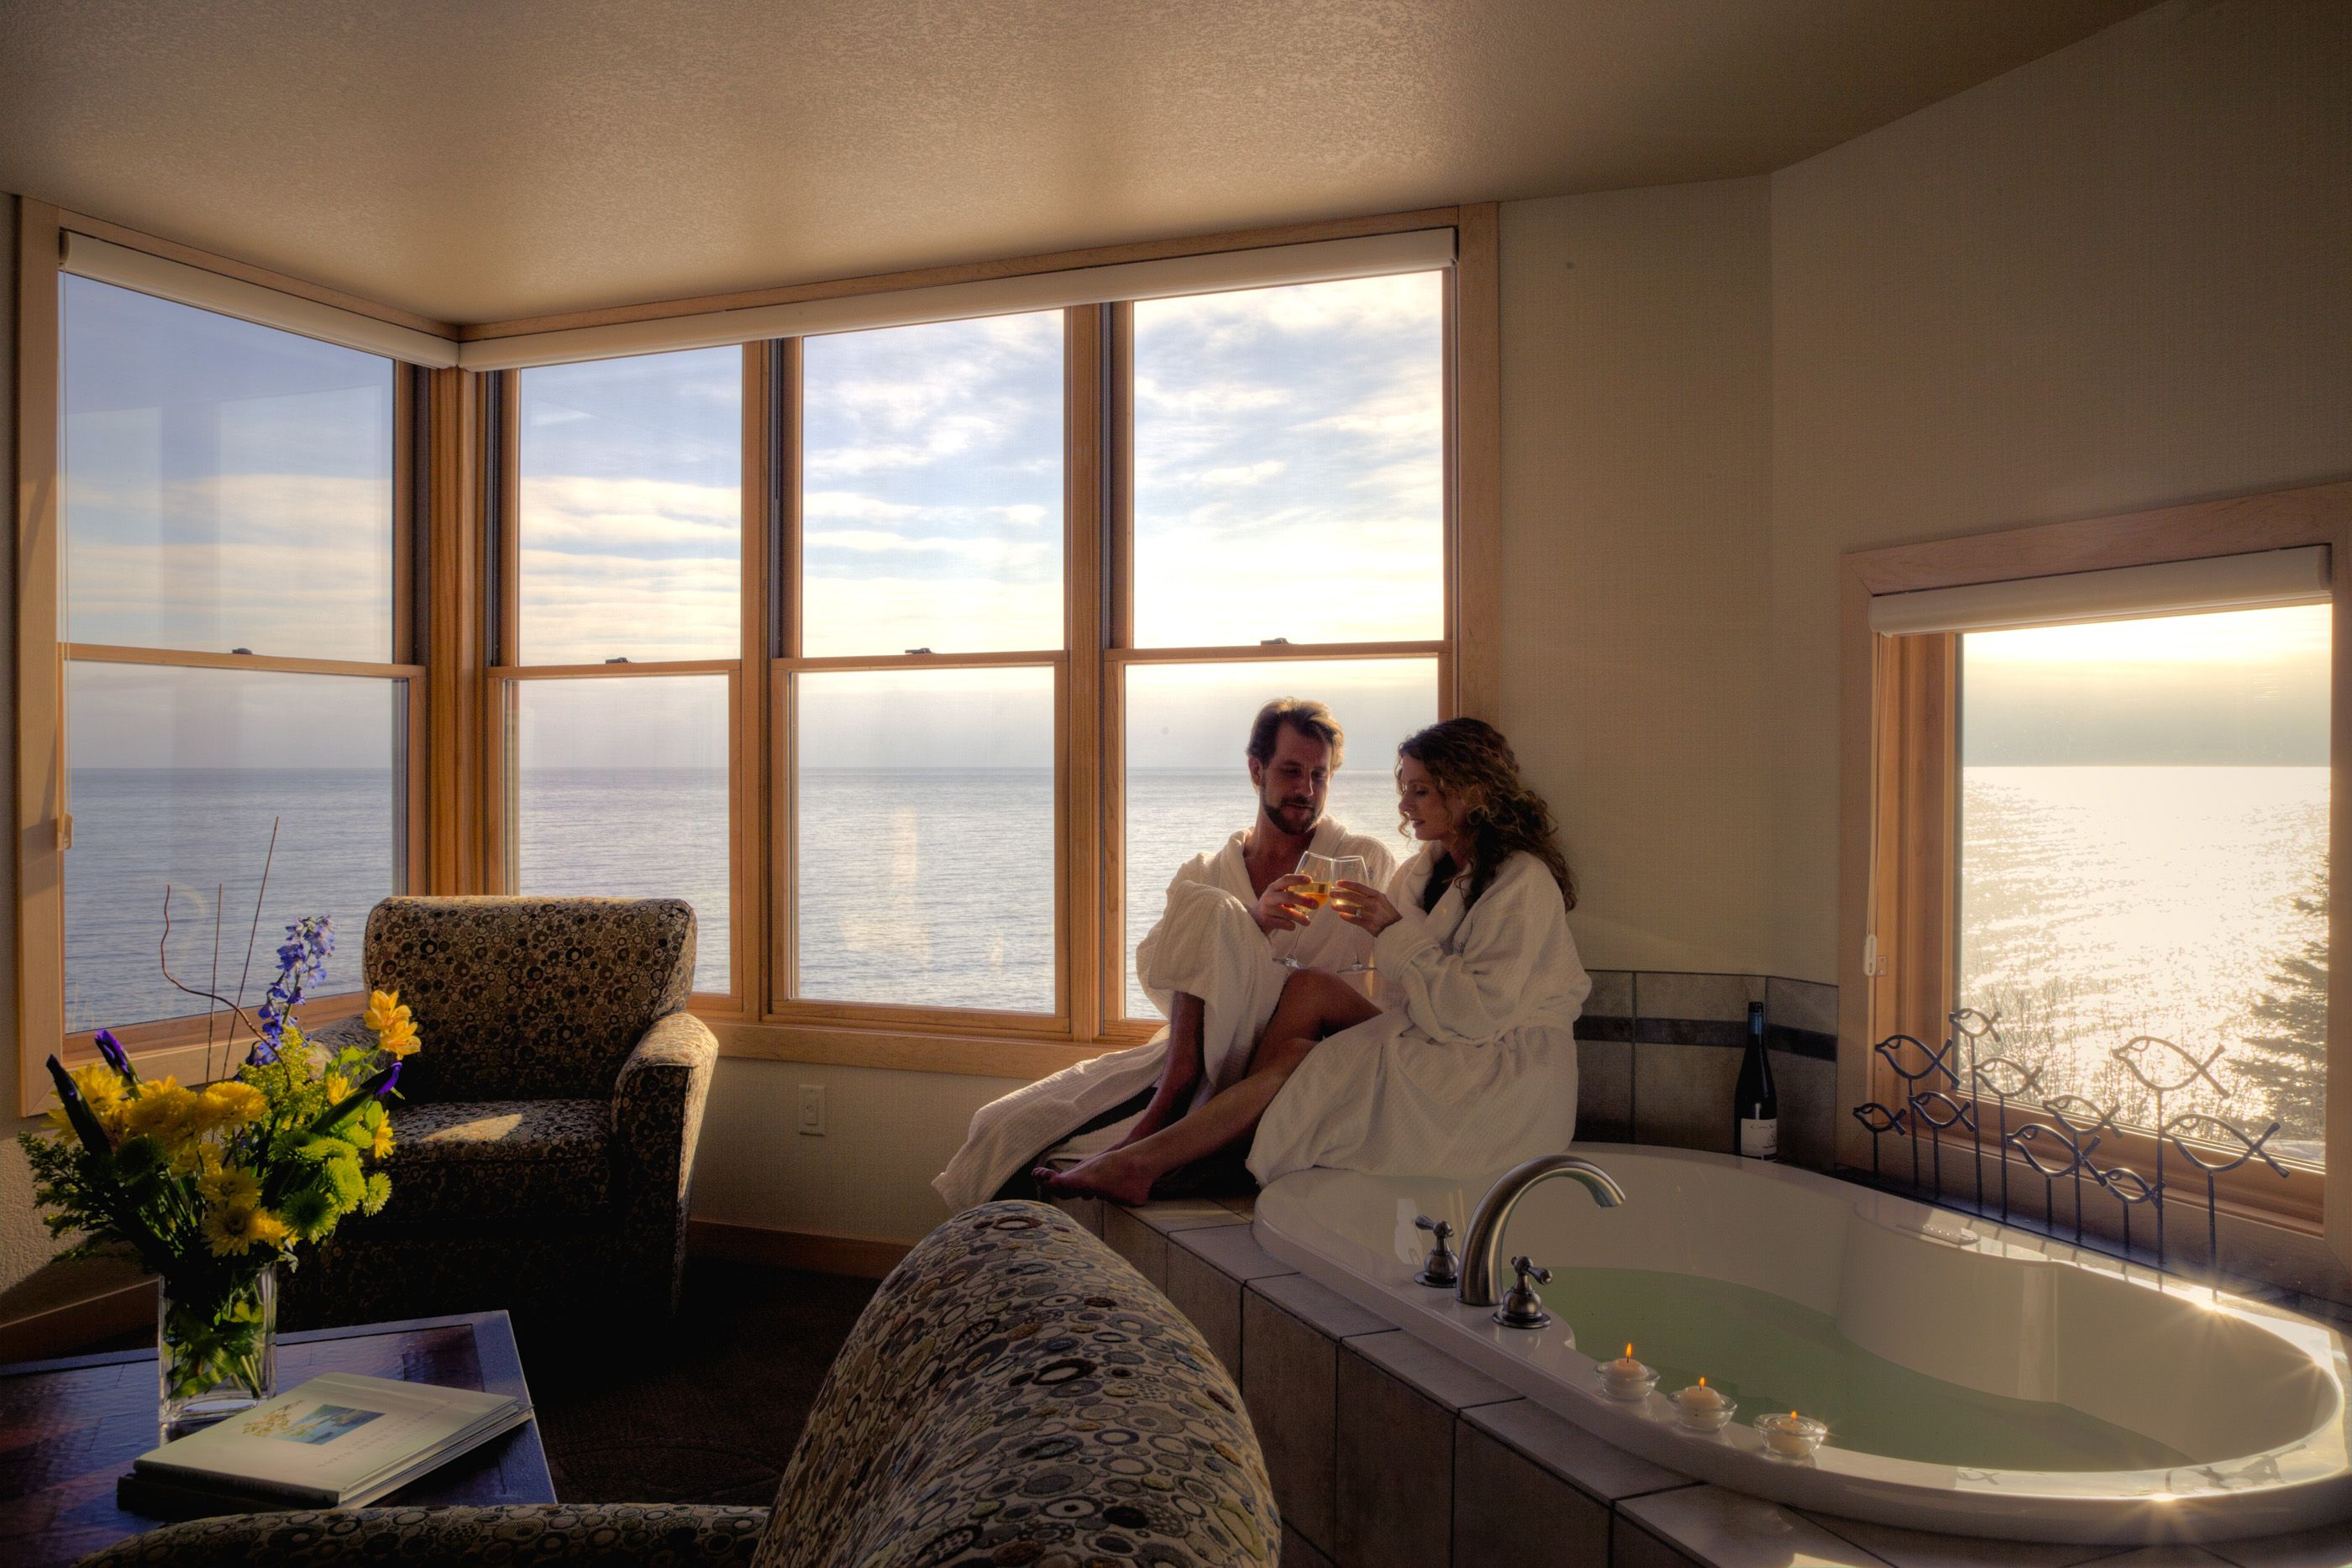 canal hotel suites us on park duluth price comfort suite tub reviews mn best hot romantic in